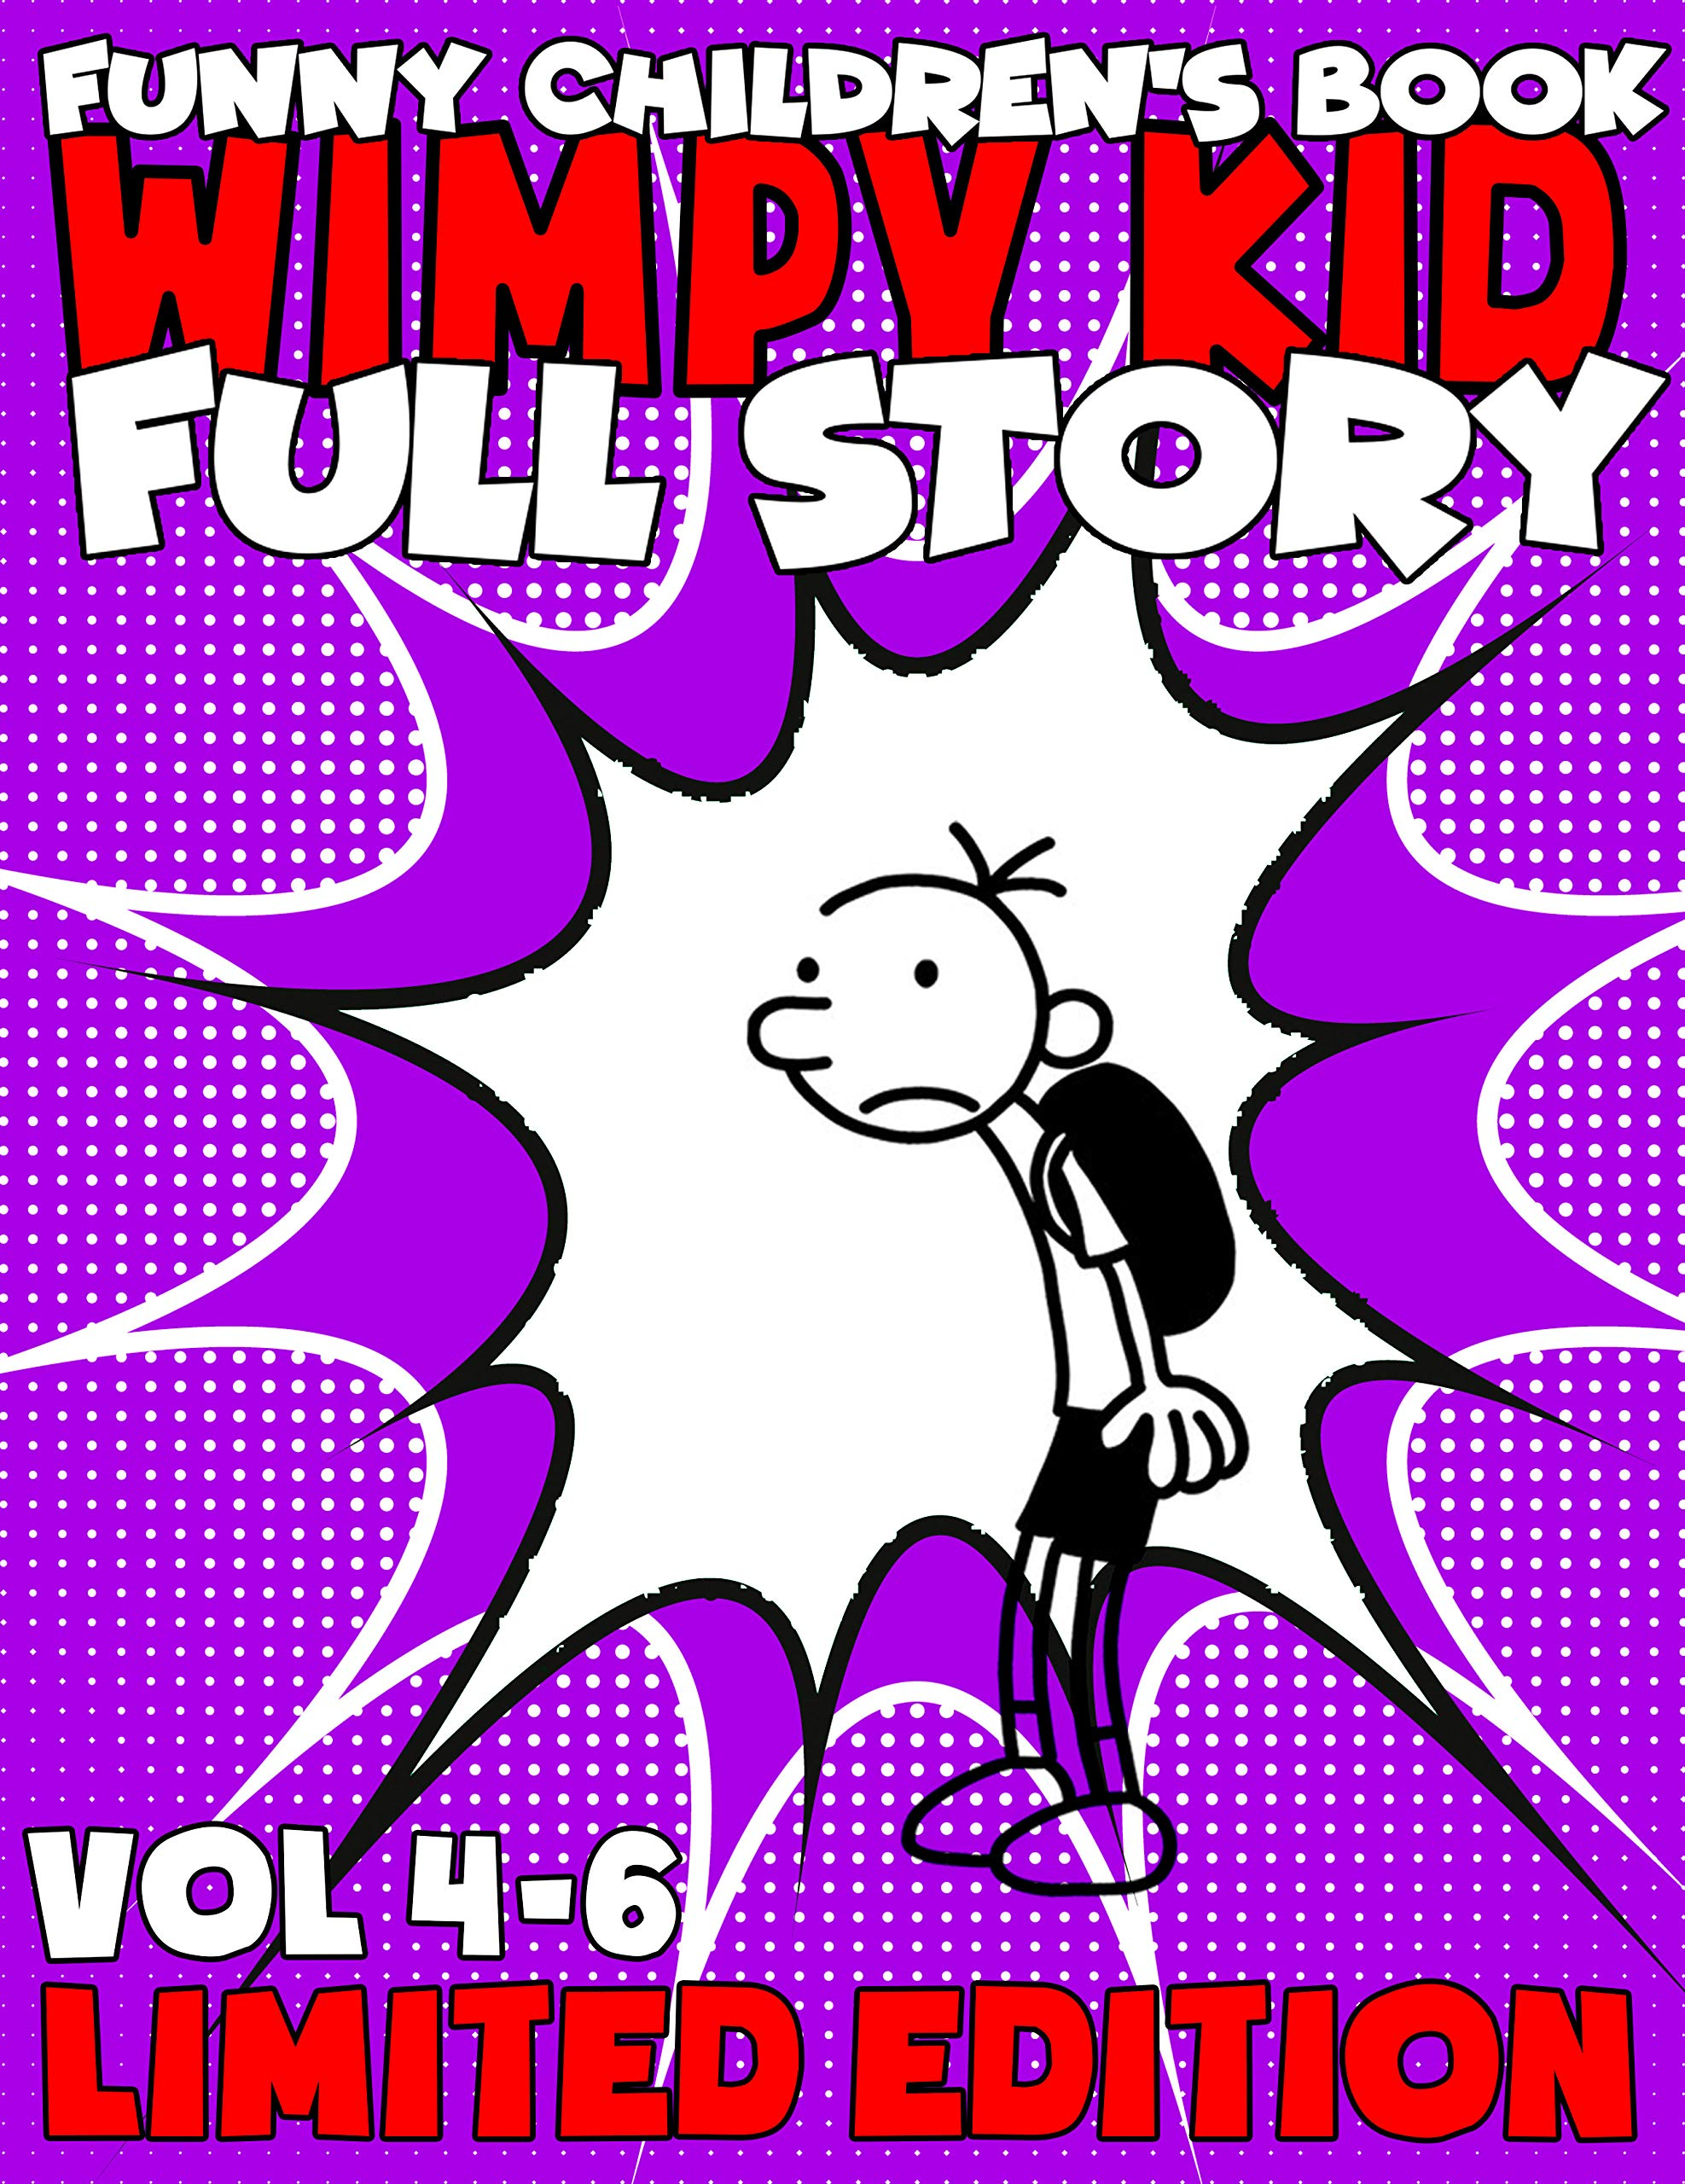 The Best Childrens Books Wimpy Kid Limited Edition Full Series: Complete Edition Vol 4-6